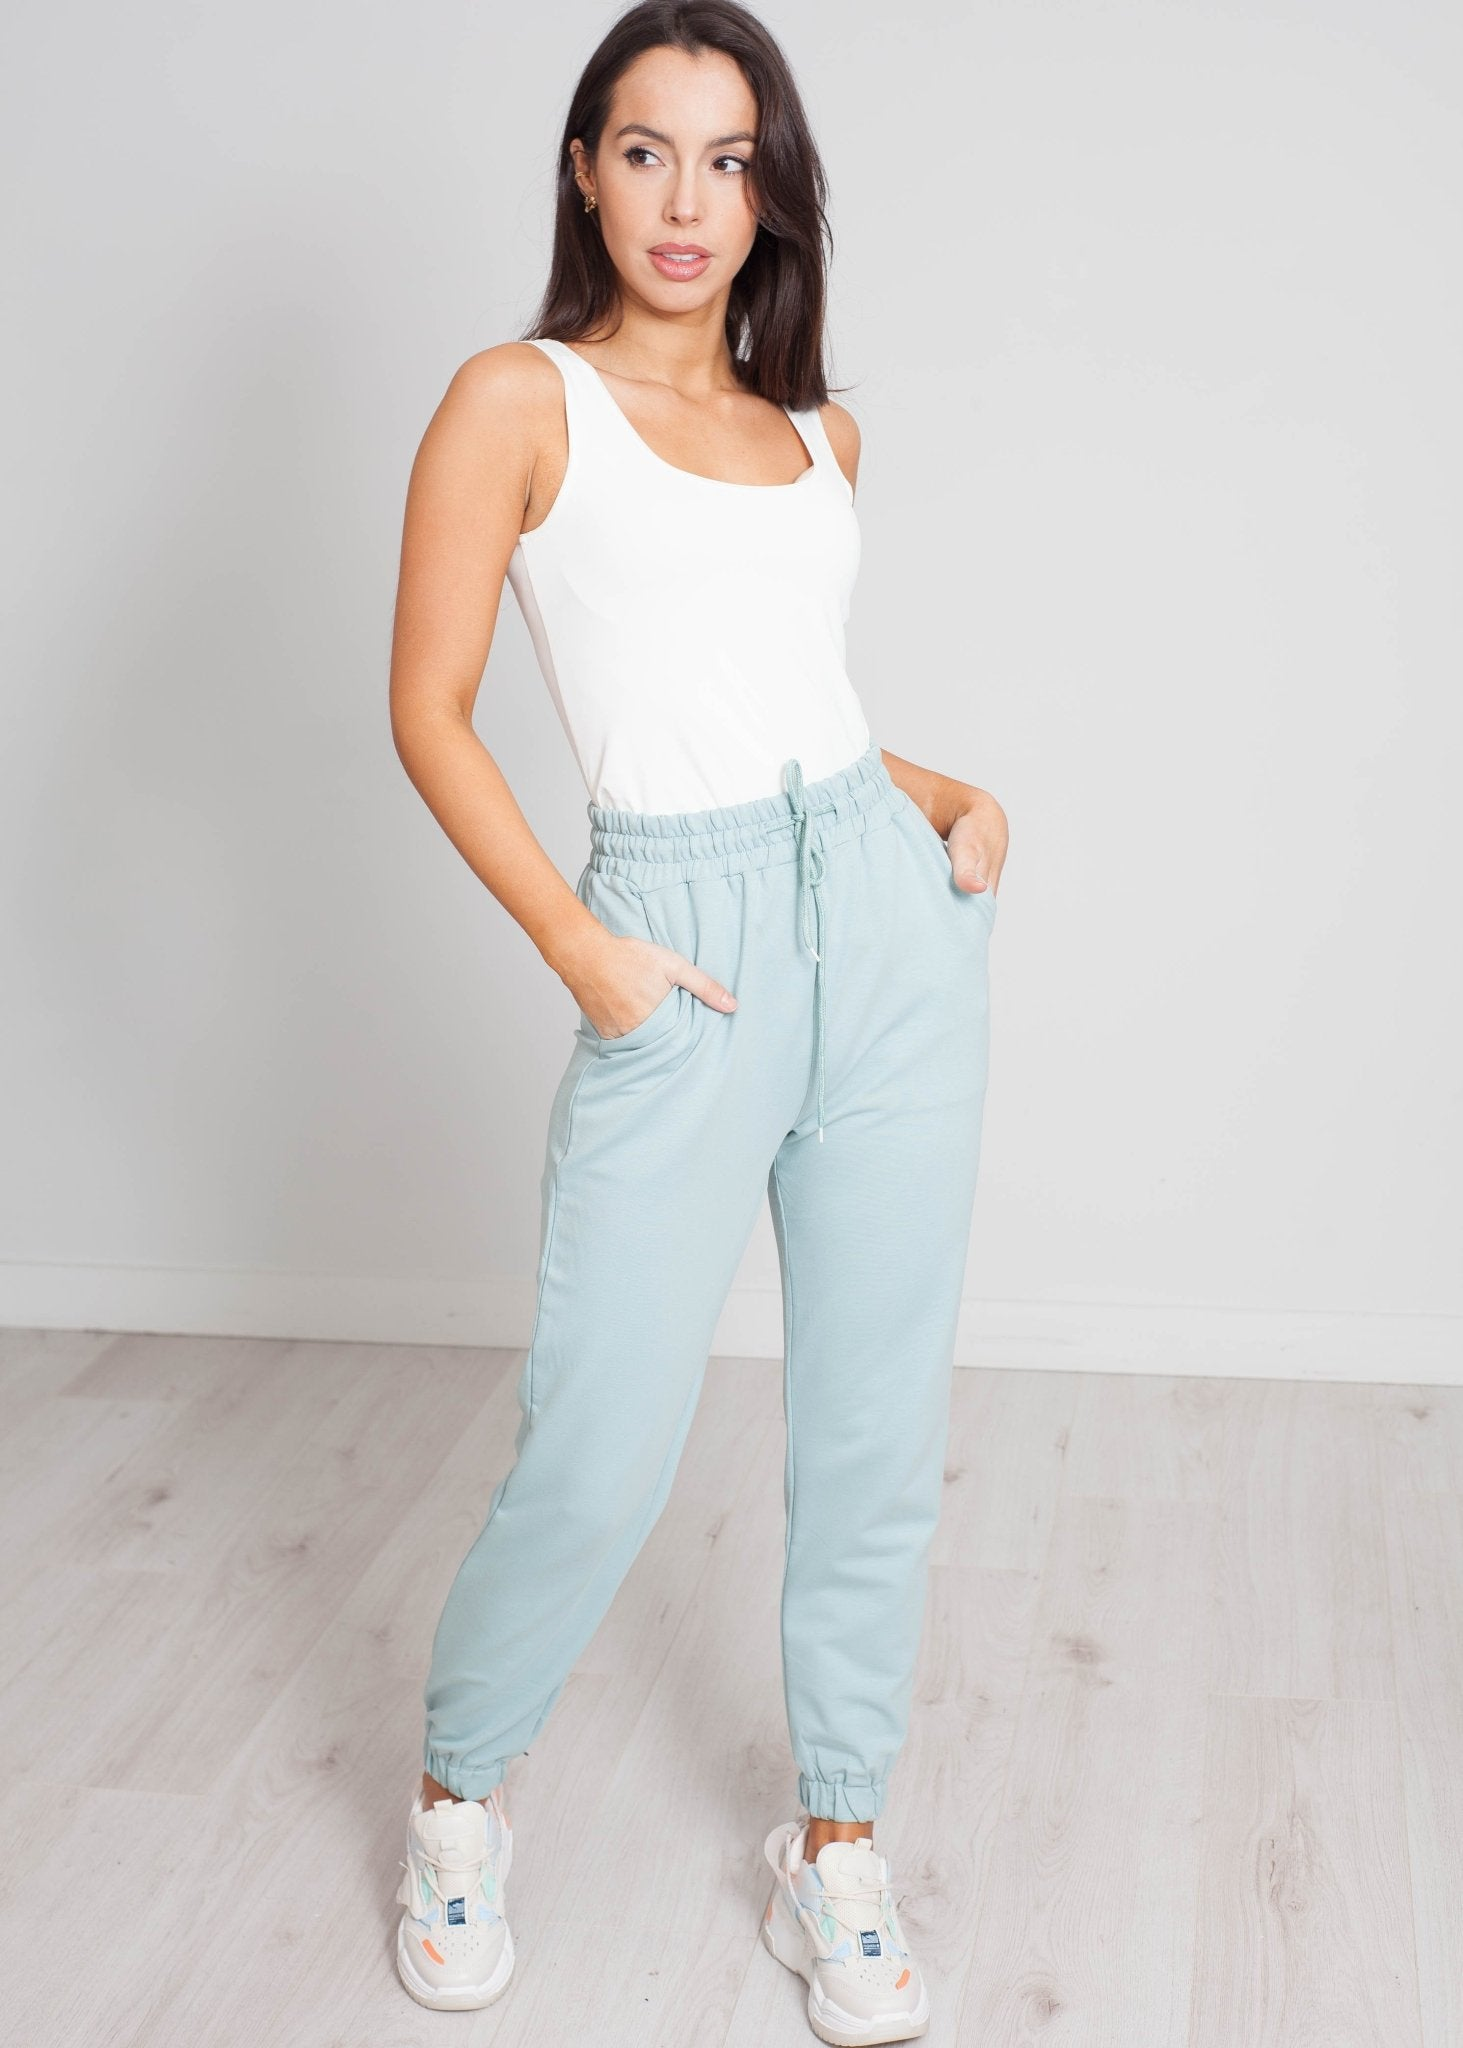 Scarlet Joggers In Mint - The Walk in Wardrobe